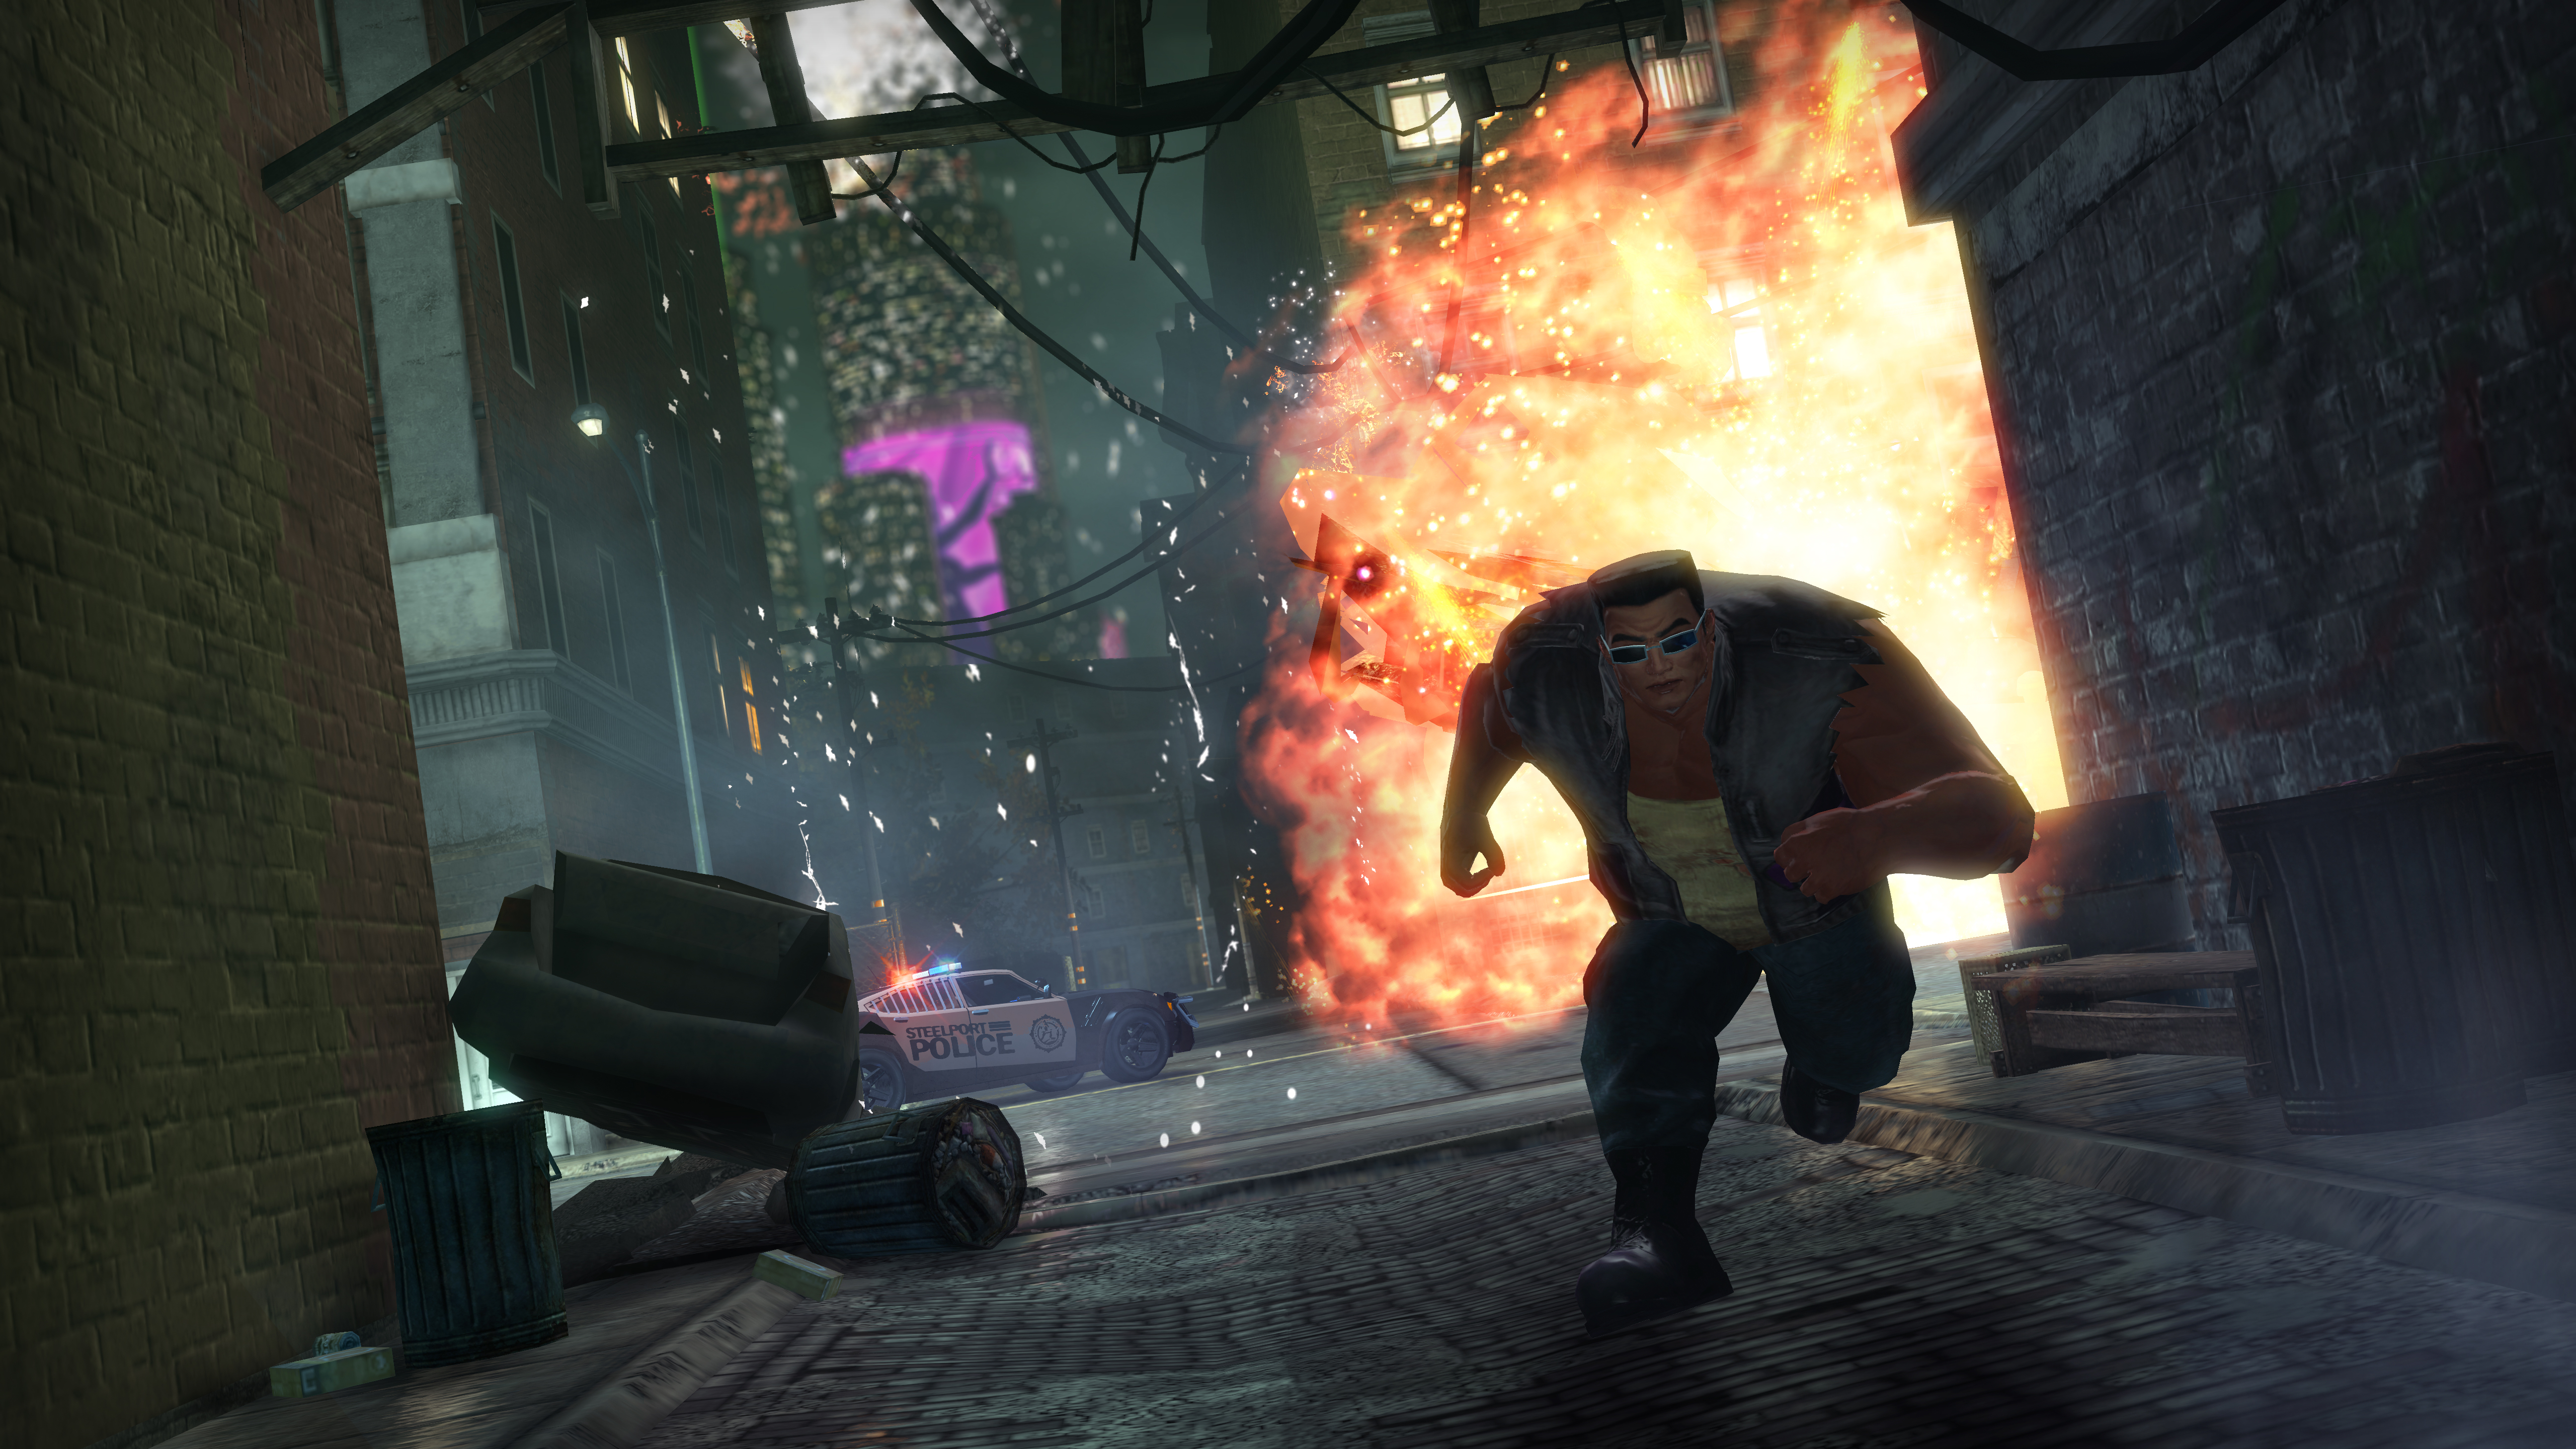 Saints Row: The Third - The Trouble with Clones DLC screenshot